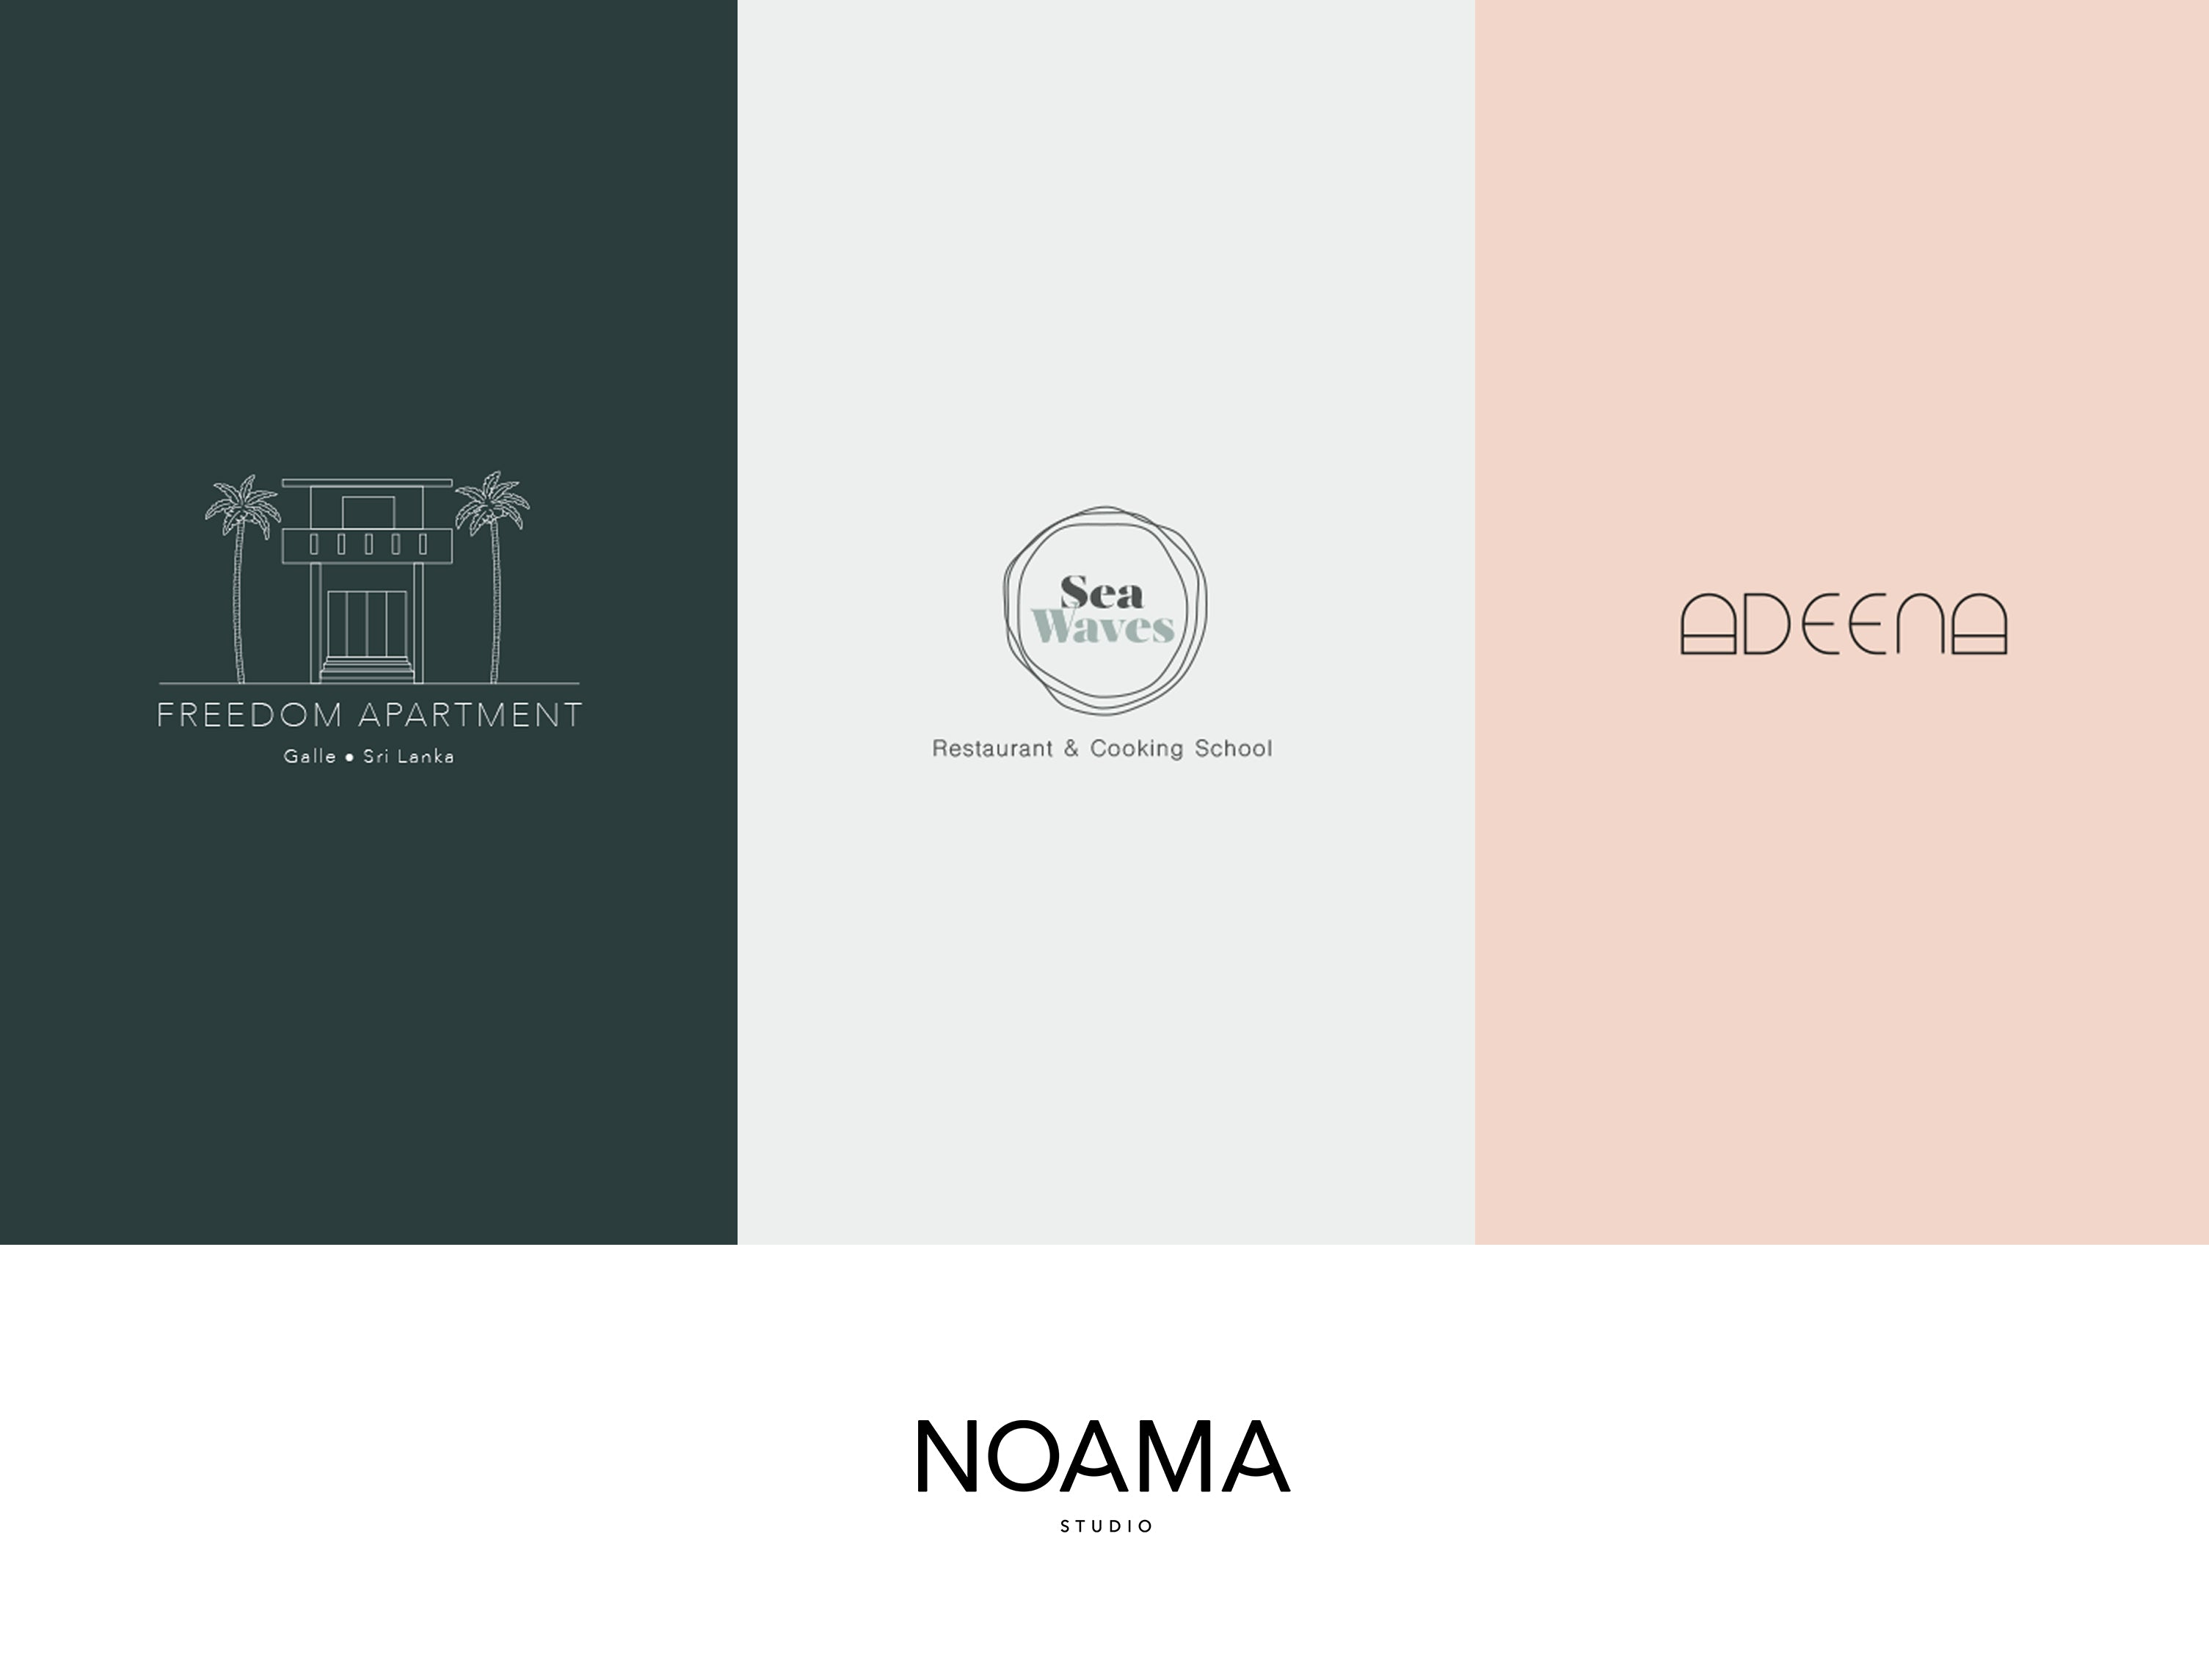 noama-studio-graphic-designer-art-director-small-business-budget